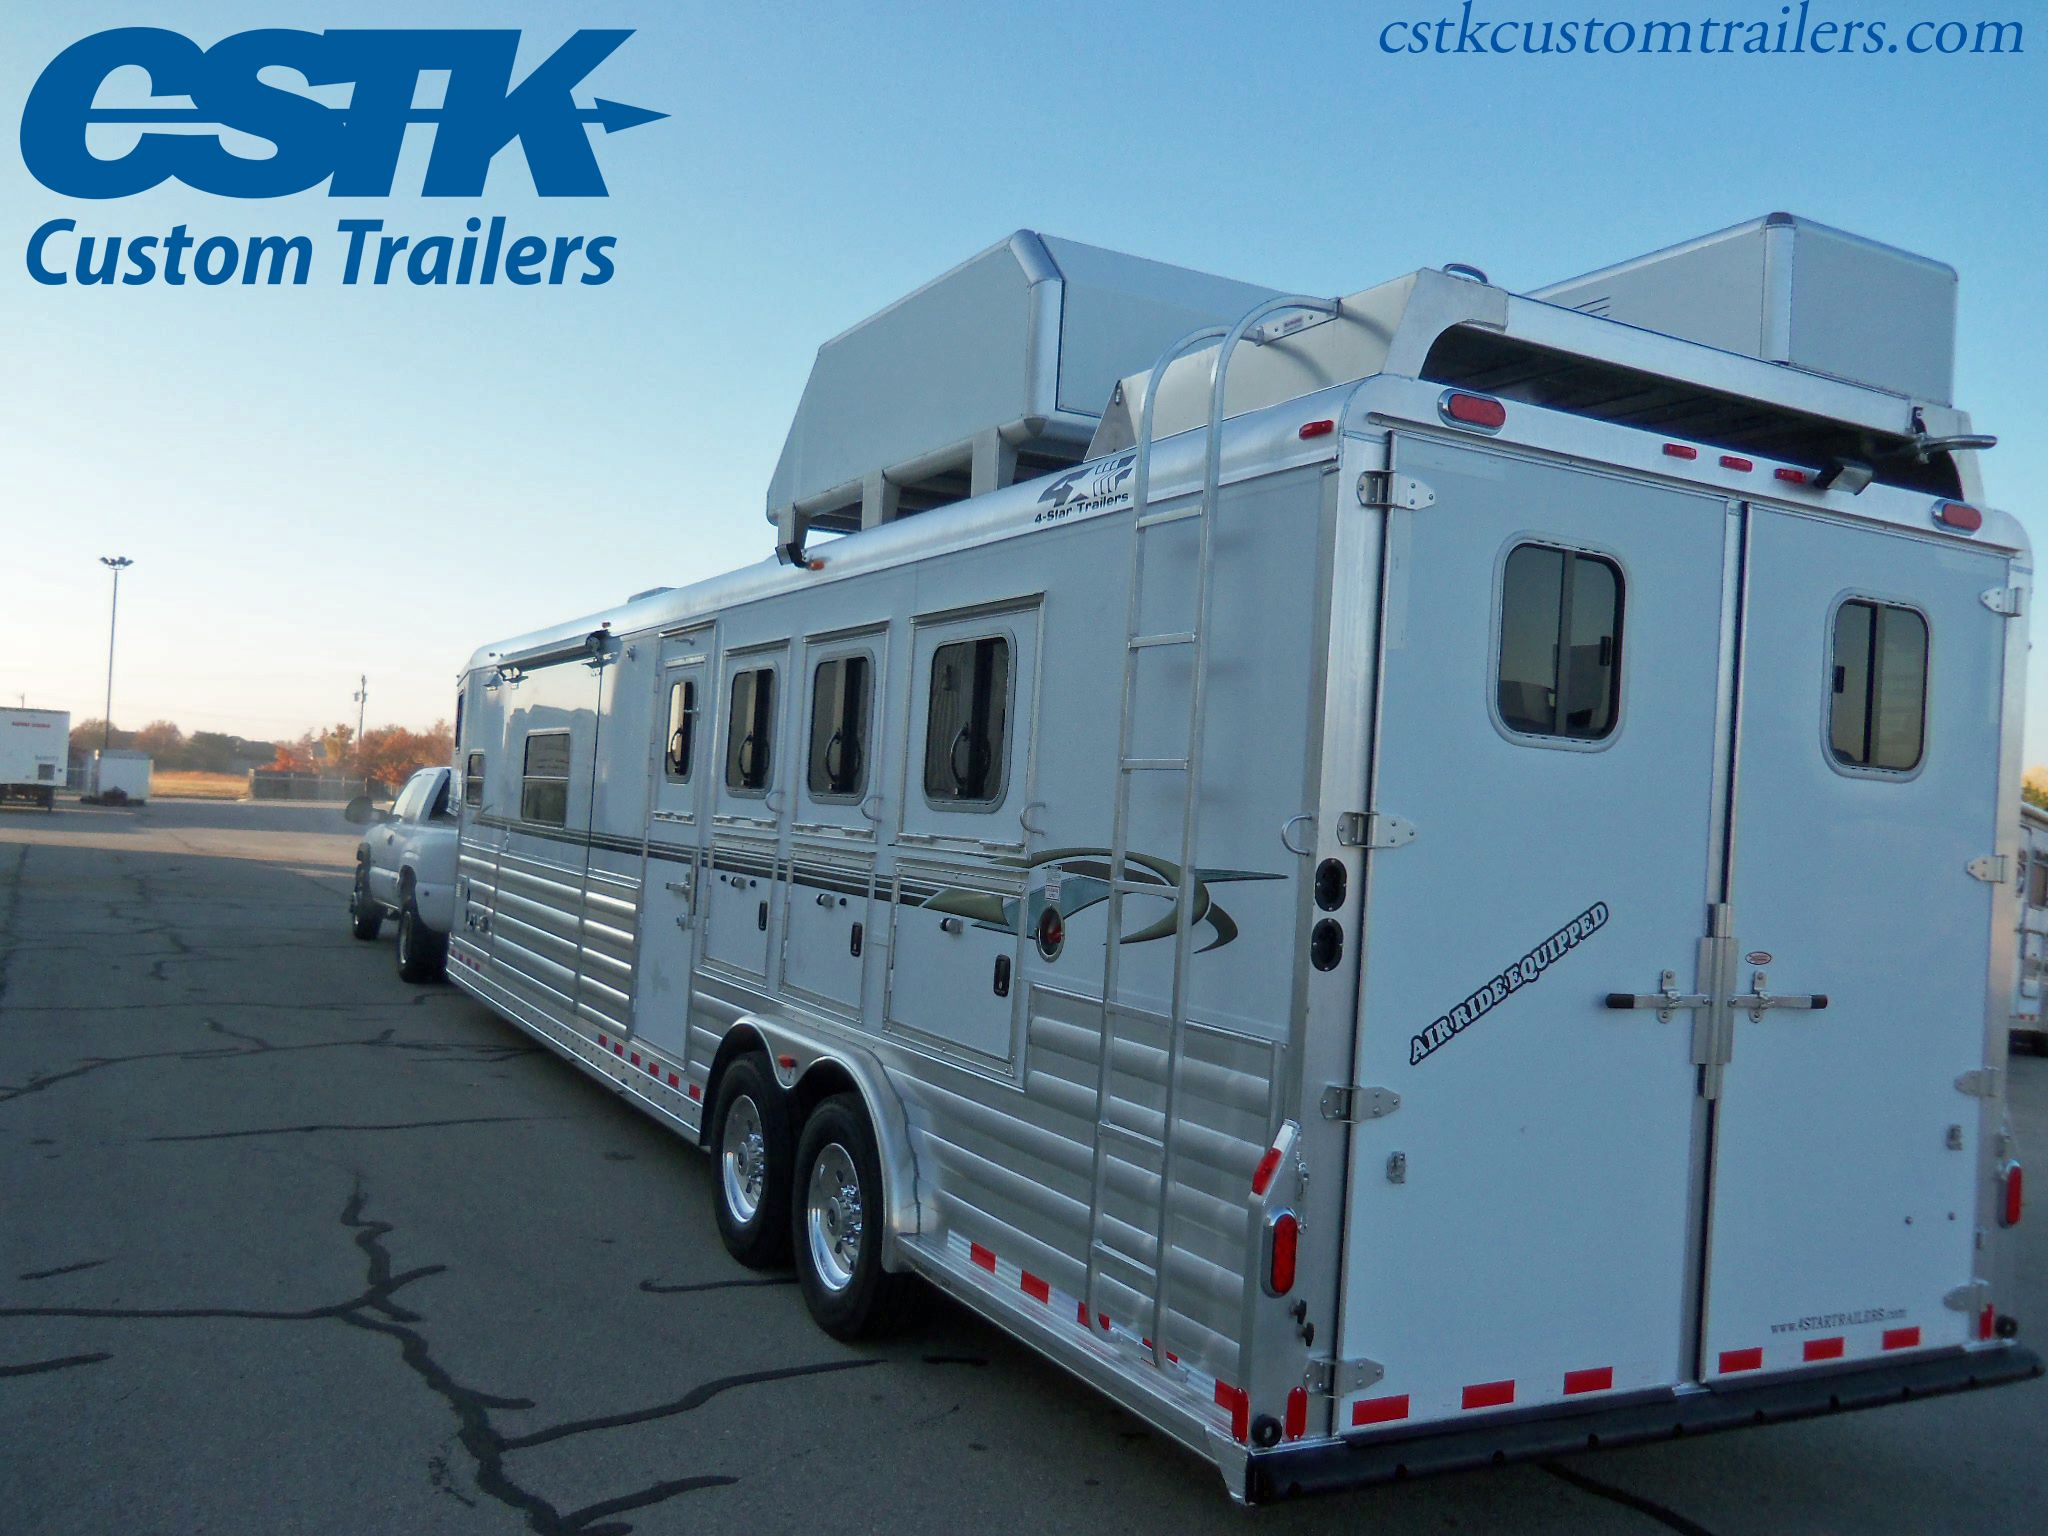 Pin On 4 Star Trailers